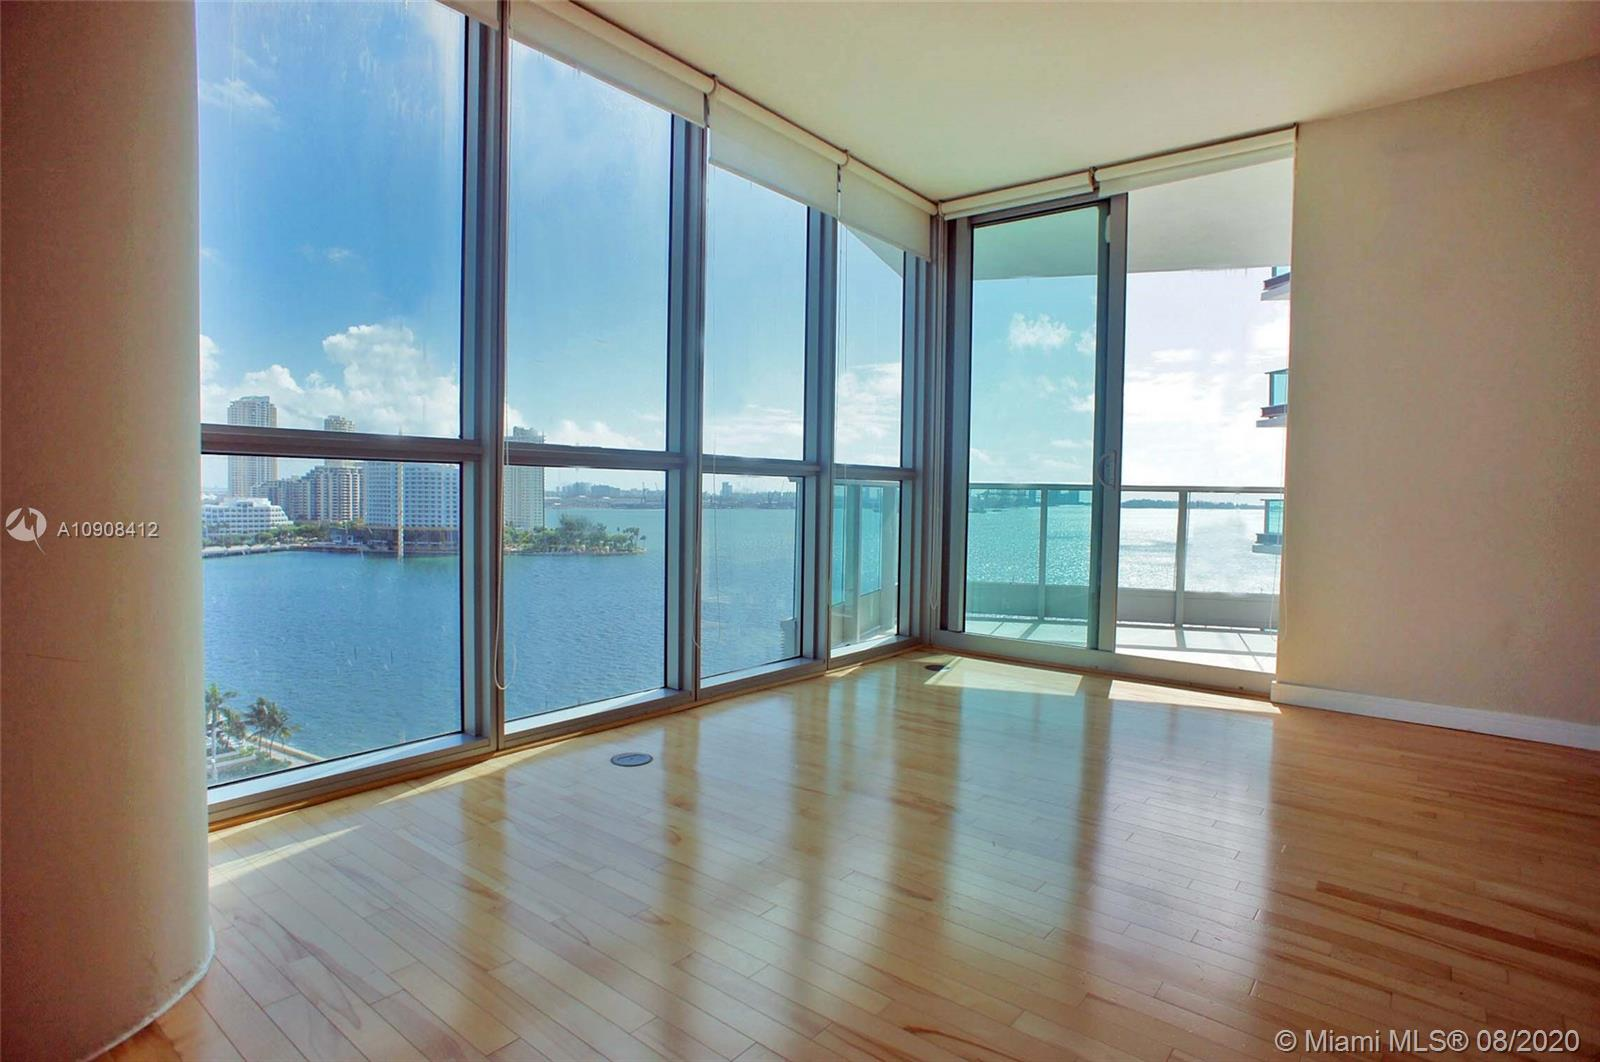 Jade Brickell.  Luxurious, high-end, smart building. Breathtaking ocean and skyline views. Marble floors, Italiancabinetry, Resort style amenities. 2 balconies. Elevator opens directly to your unit. Walking distance to shops, nightlife and entertainment. 15 minutes drive to South Beach and Key Biscayne Beaches. Must see!